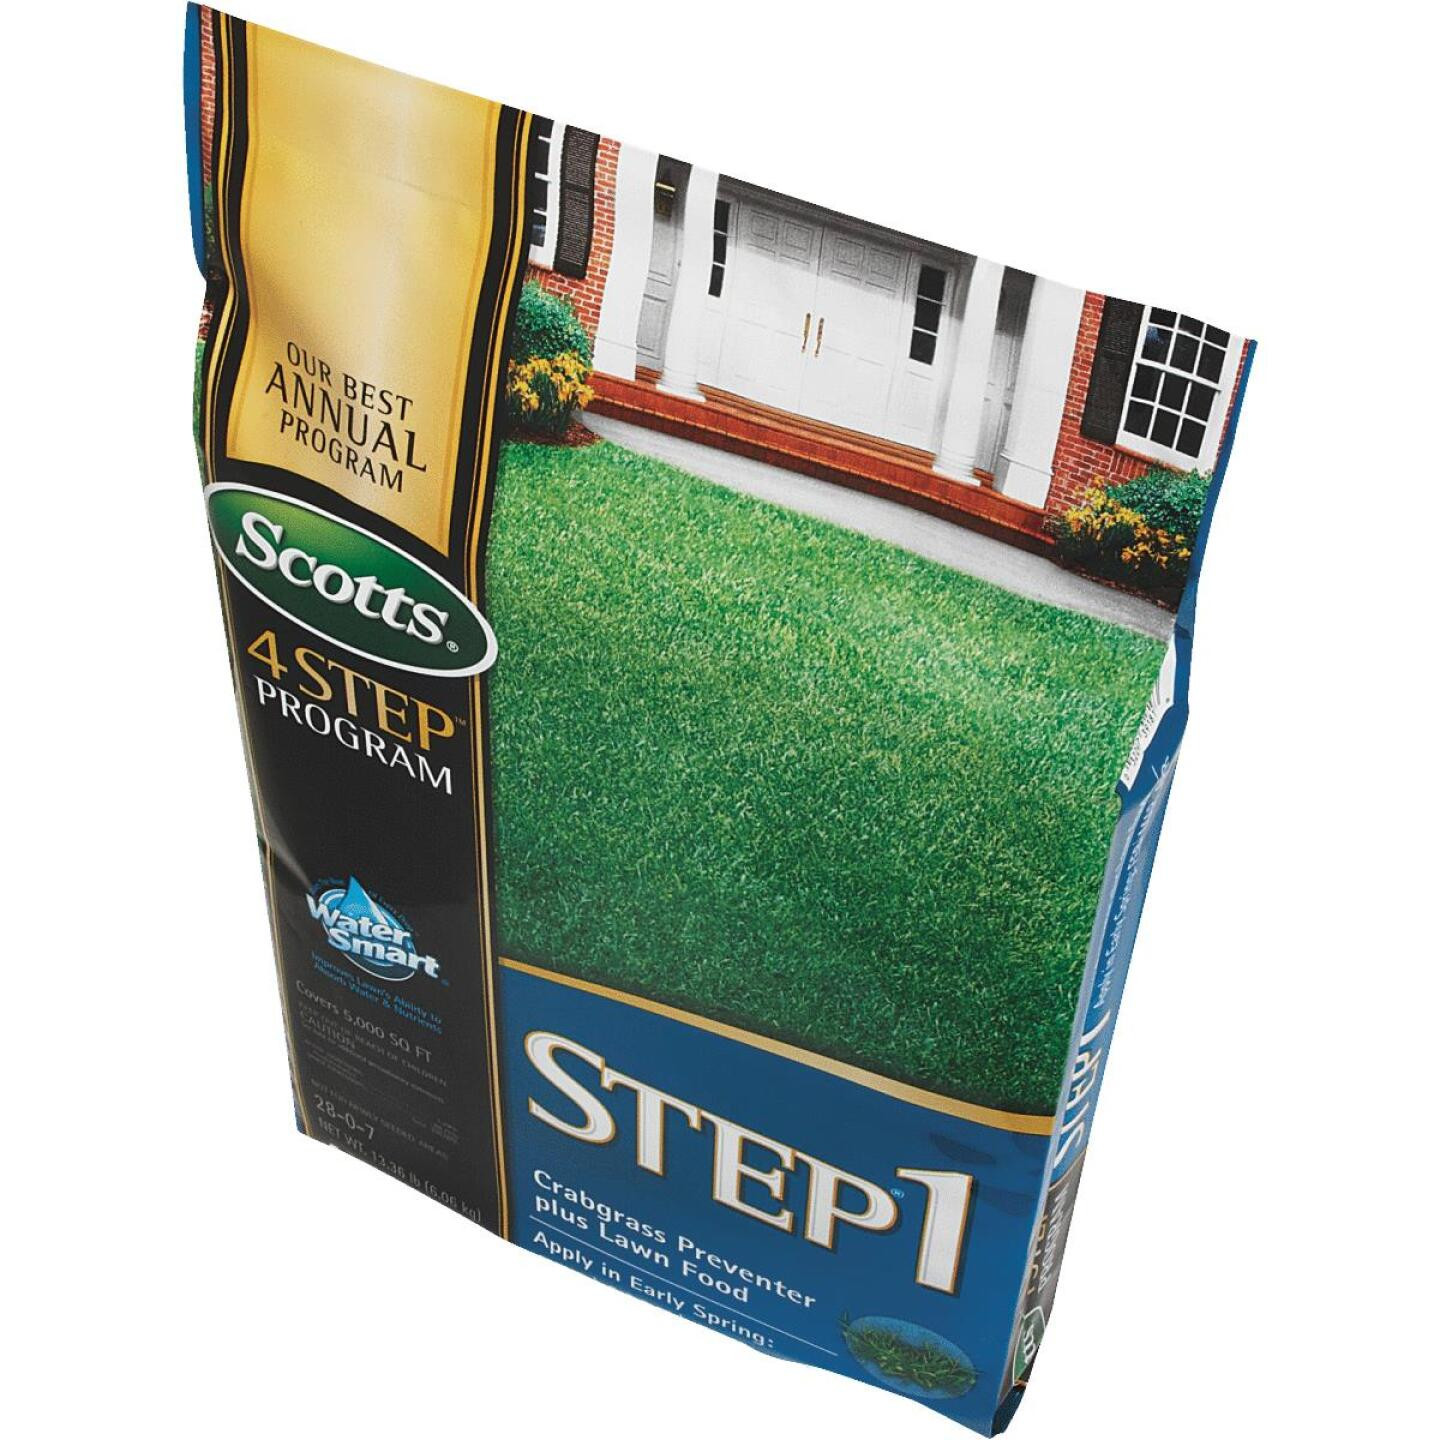 Scotts 4-Step Program Step 1 13.46 Lb. 5000 Sq. Ft. 28-0-7 Lawn Fertilizer with Crabgrass Preventer Image 3